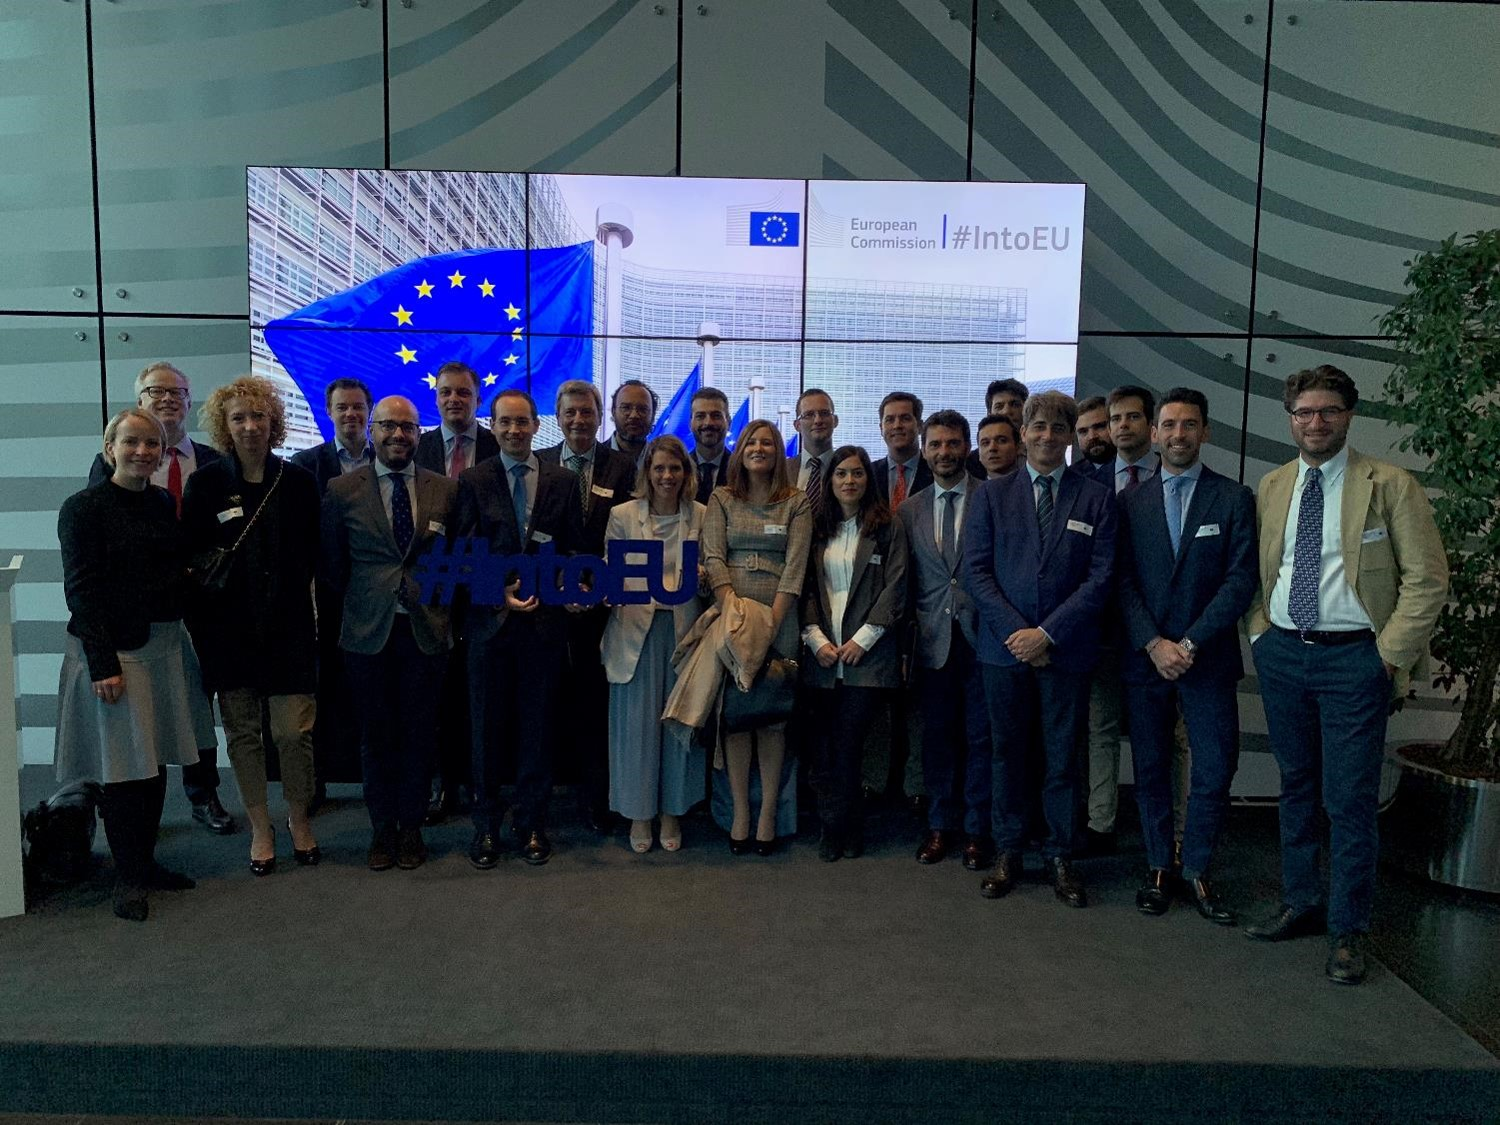 Workshop on European Institutions in Brussels organized by Andersen Tax & Legal